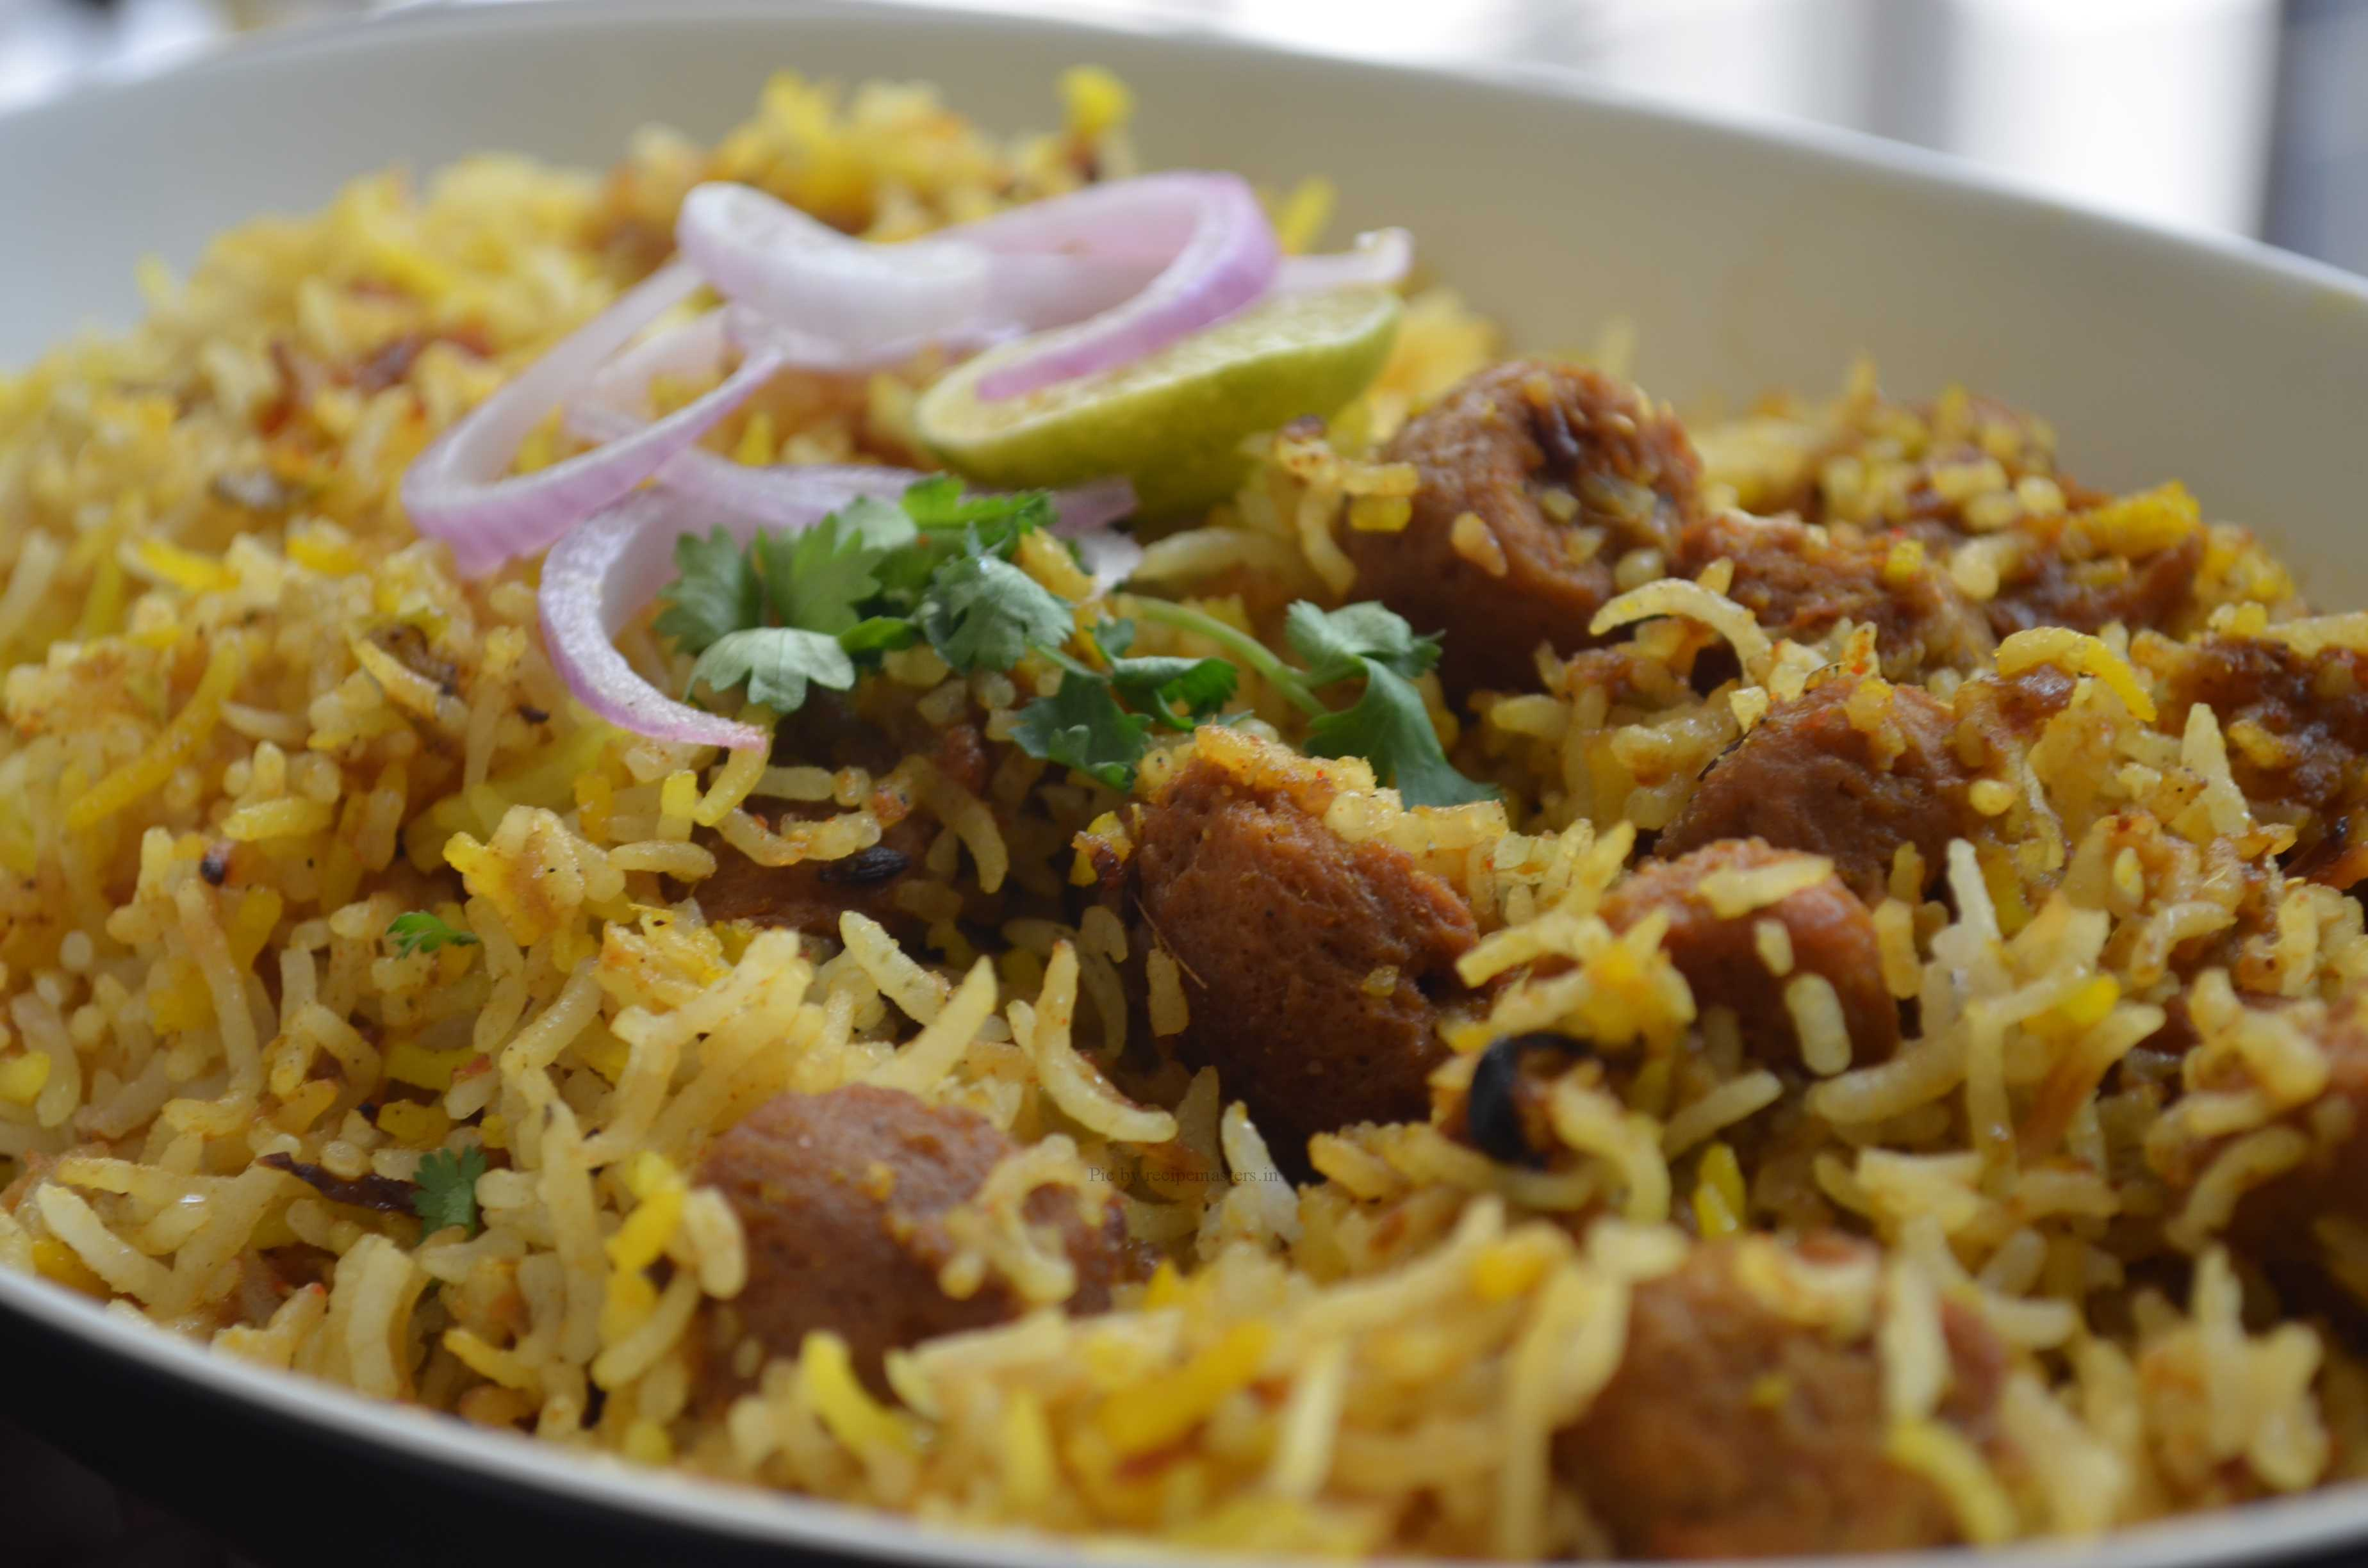 Rahat cooking biryani recipe